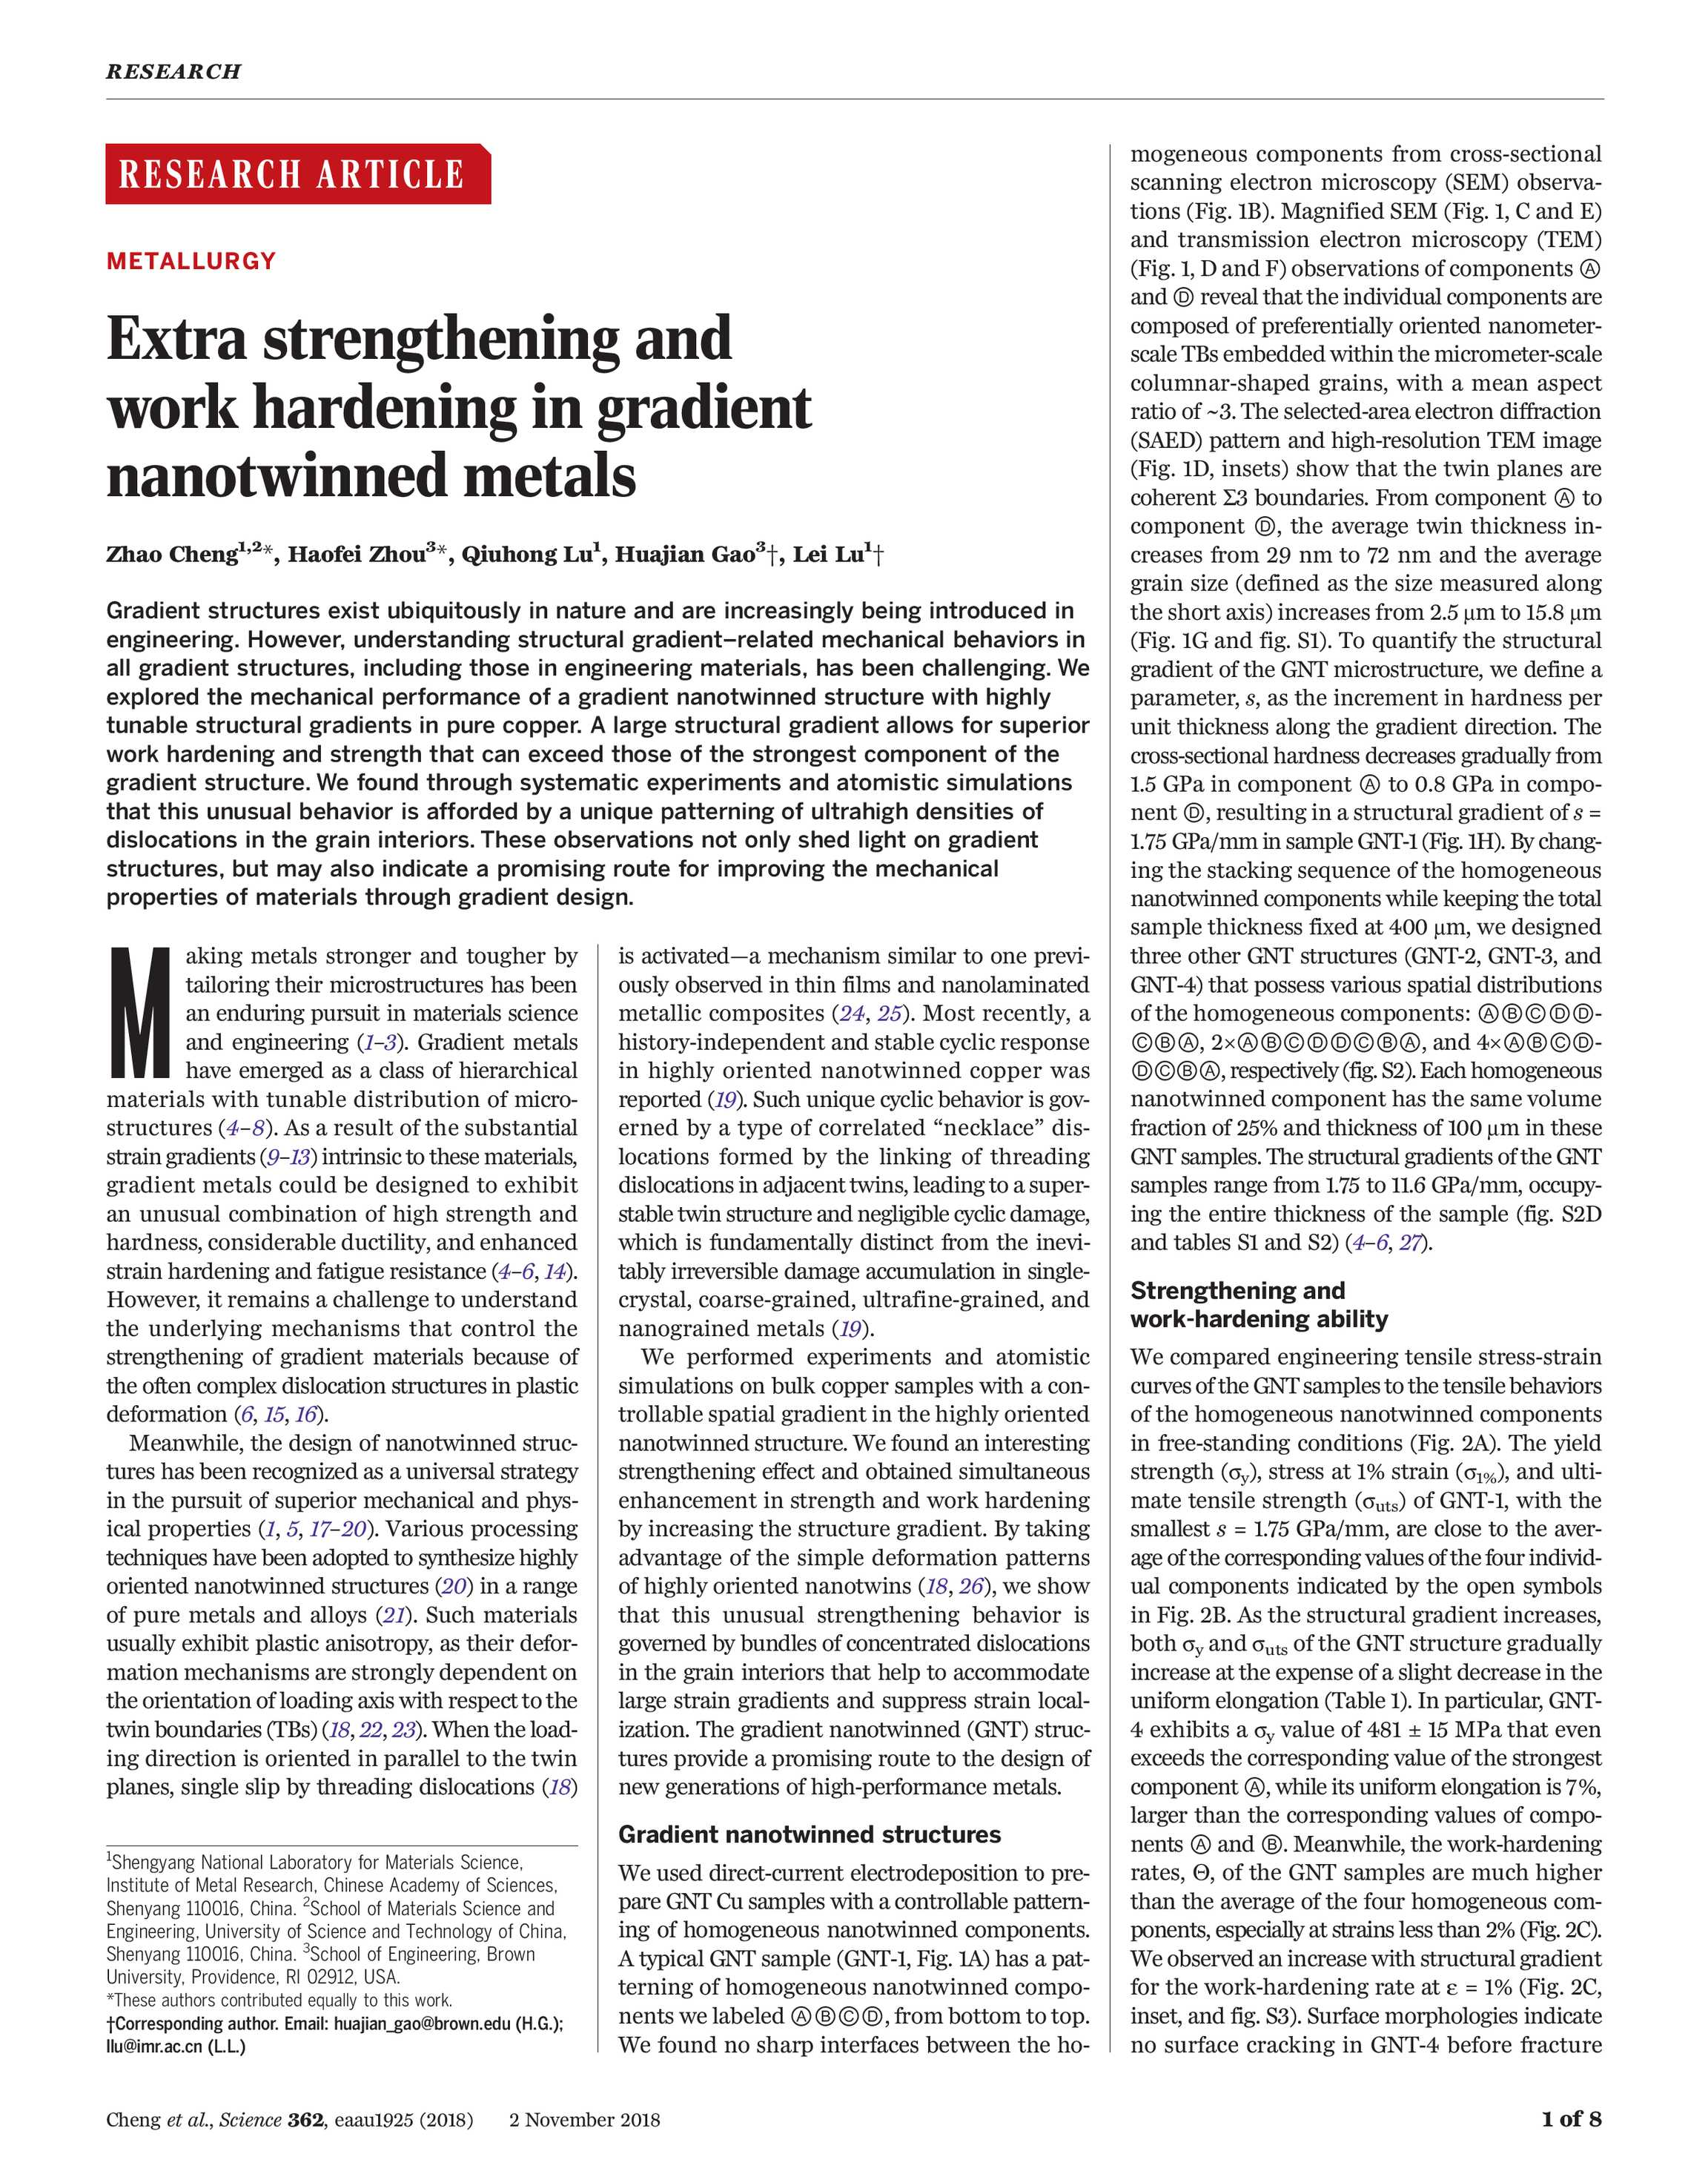 Science Magazine - November 2, 2018 - page 559